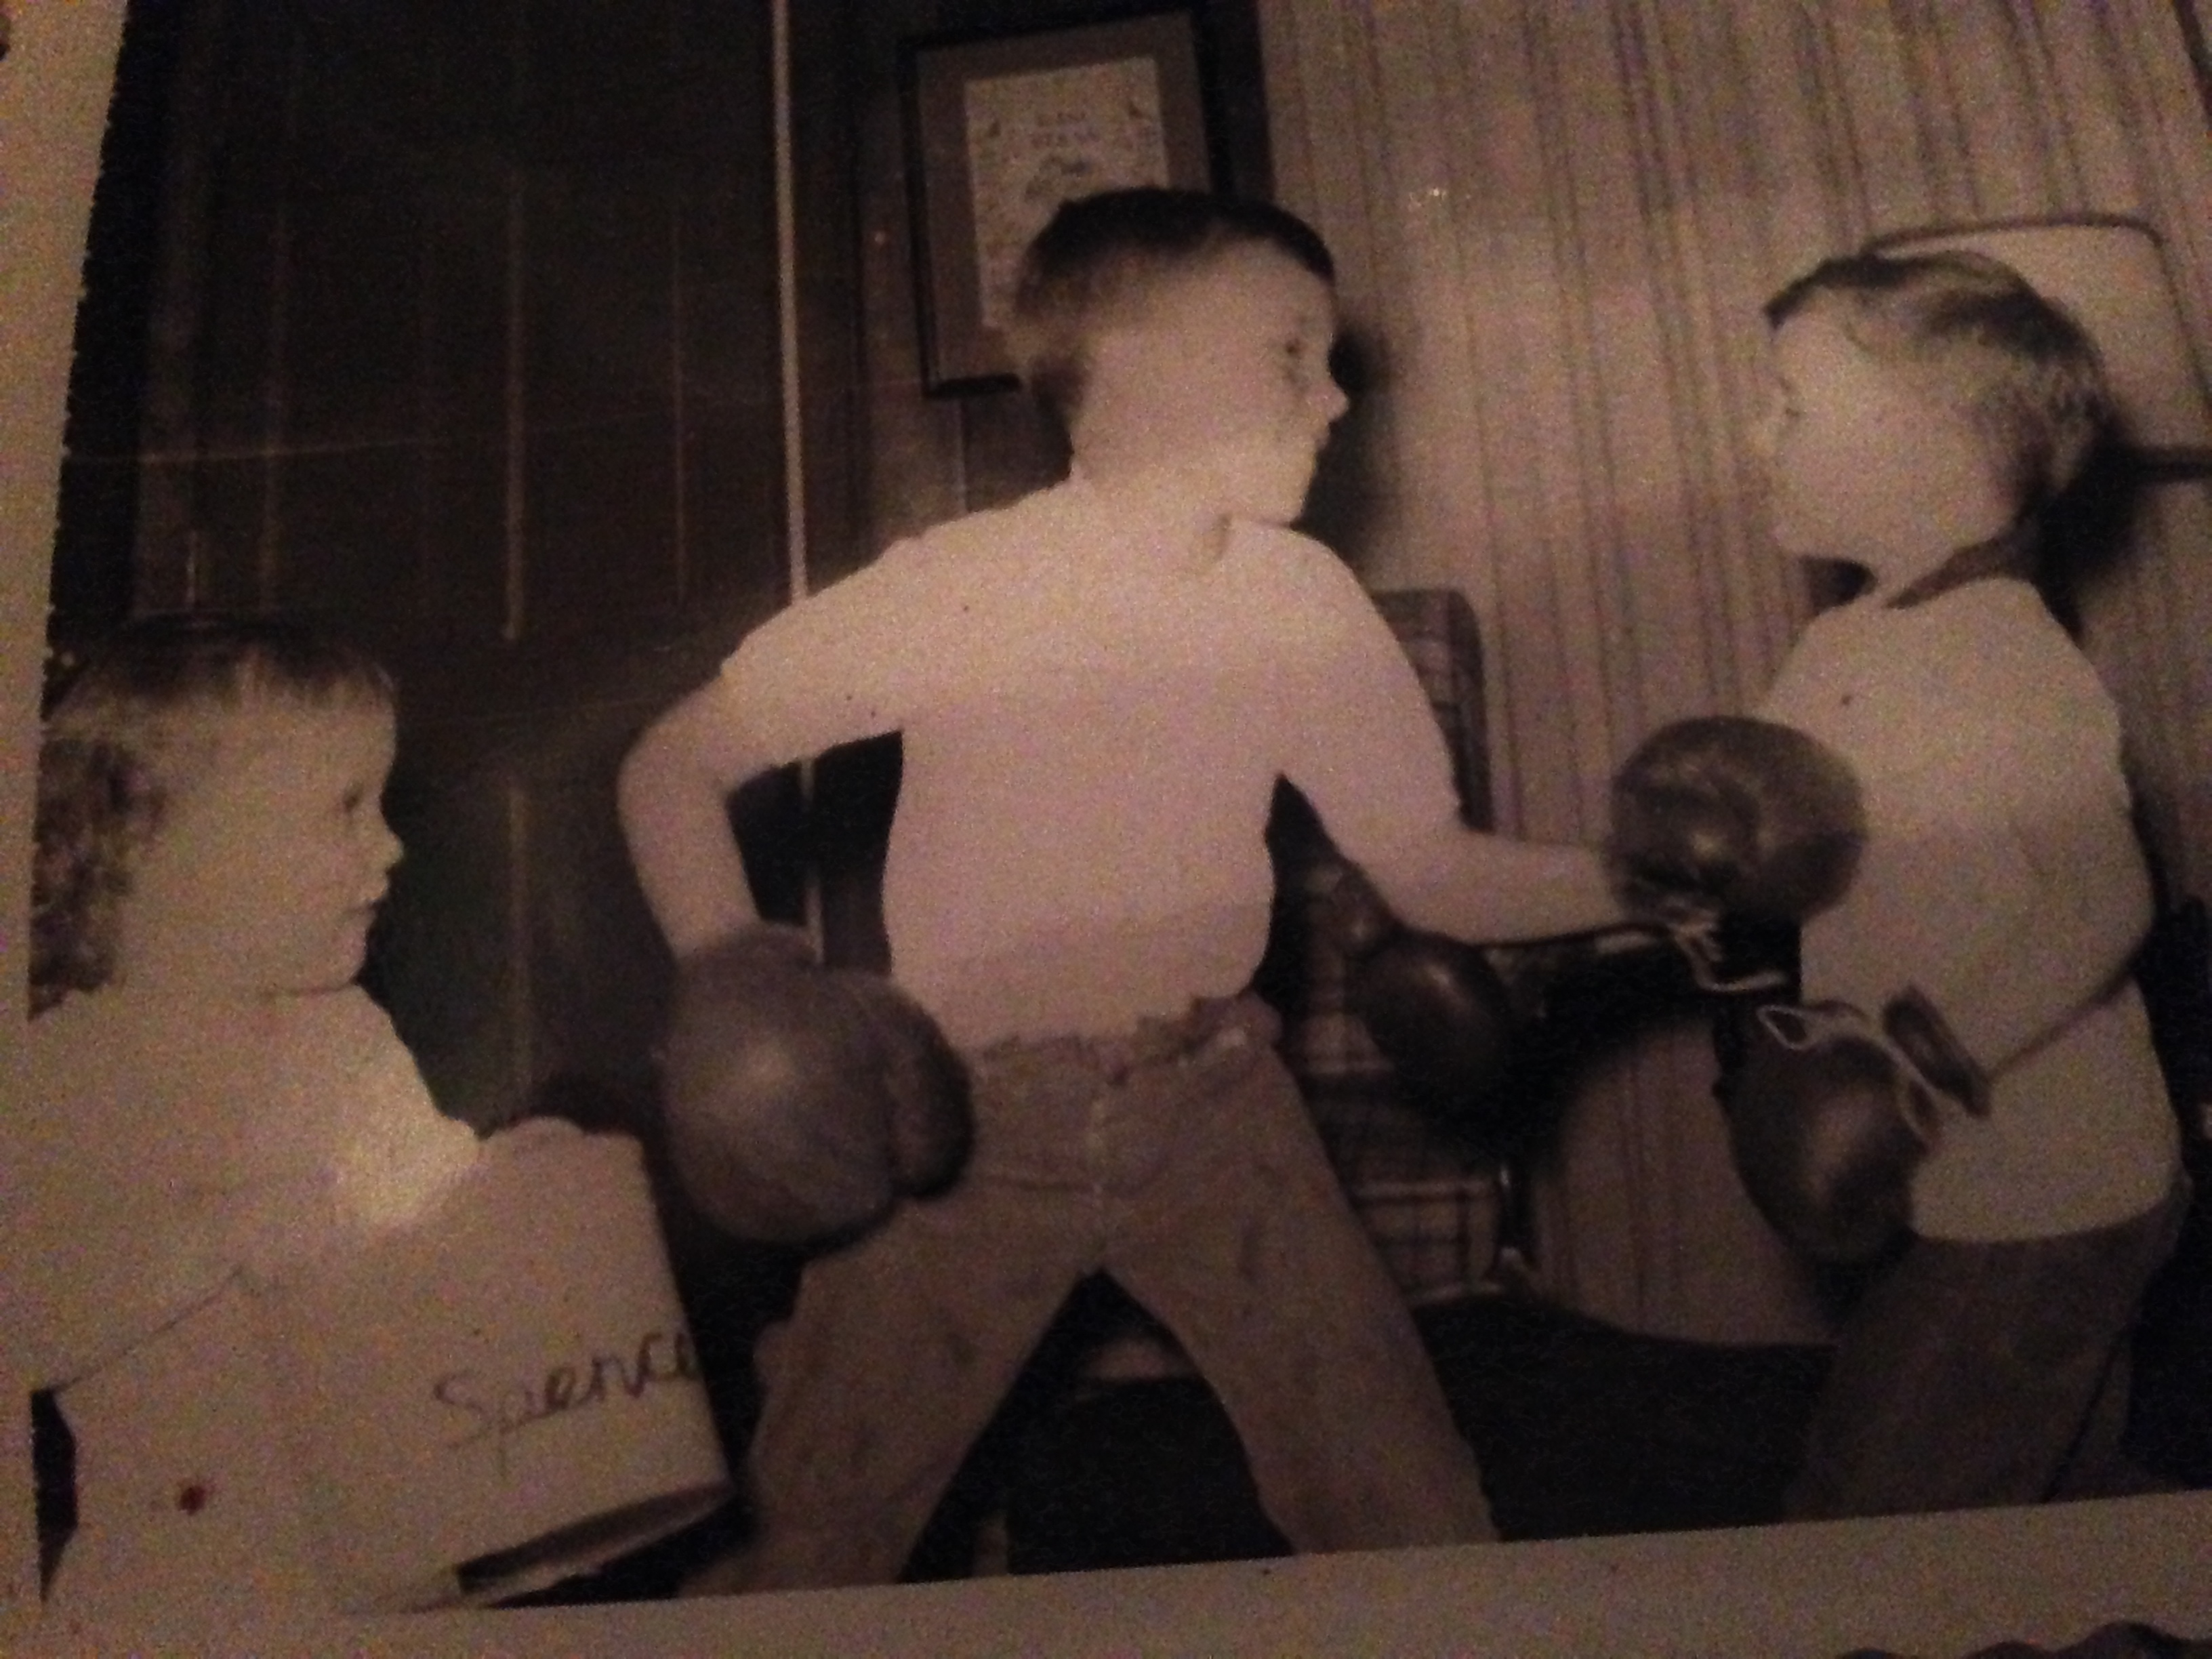 I wanted in on the action. Looks like I was on my brother Spencer's team.